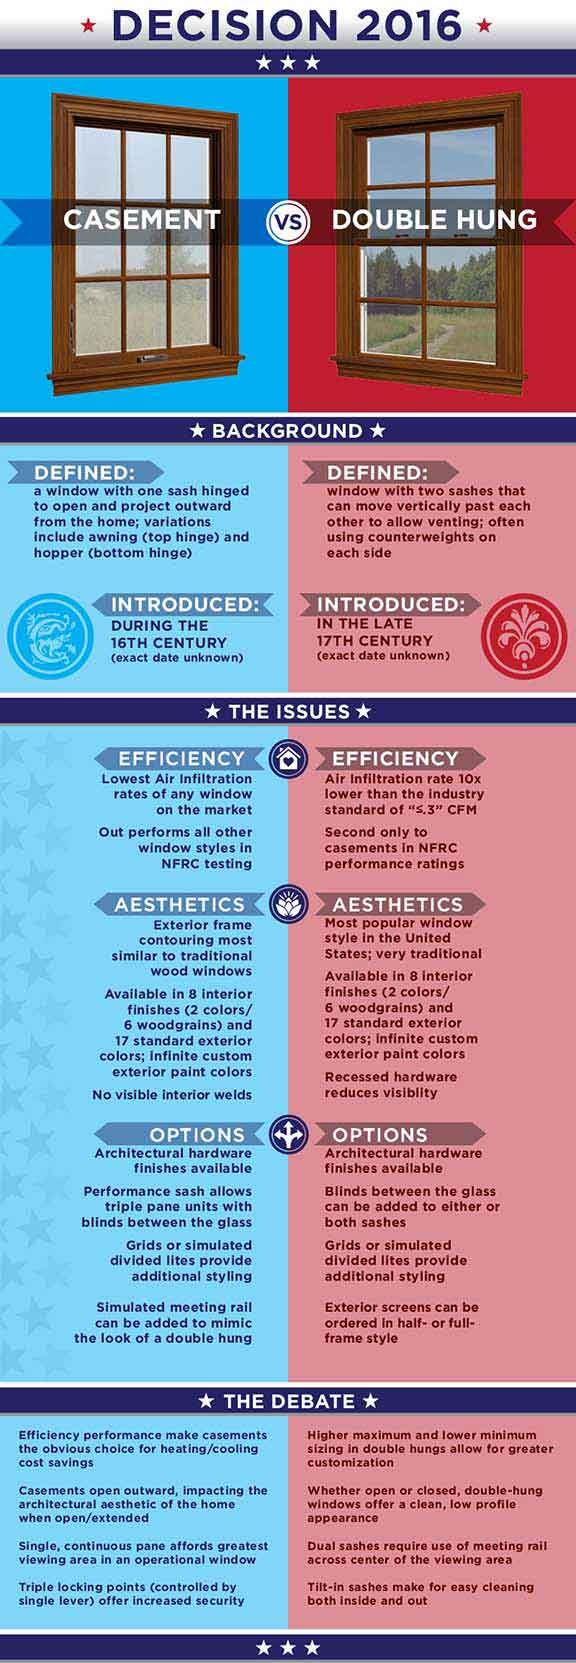 Casement vs Double Hung Infographic